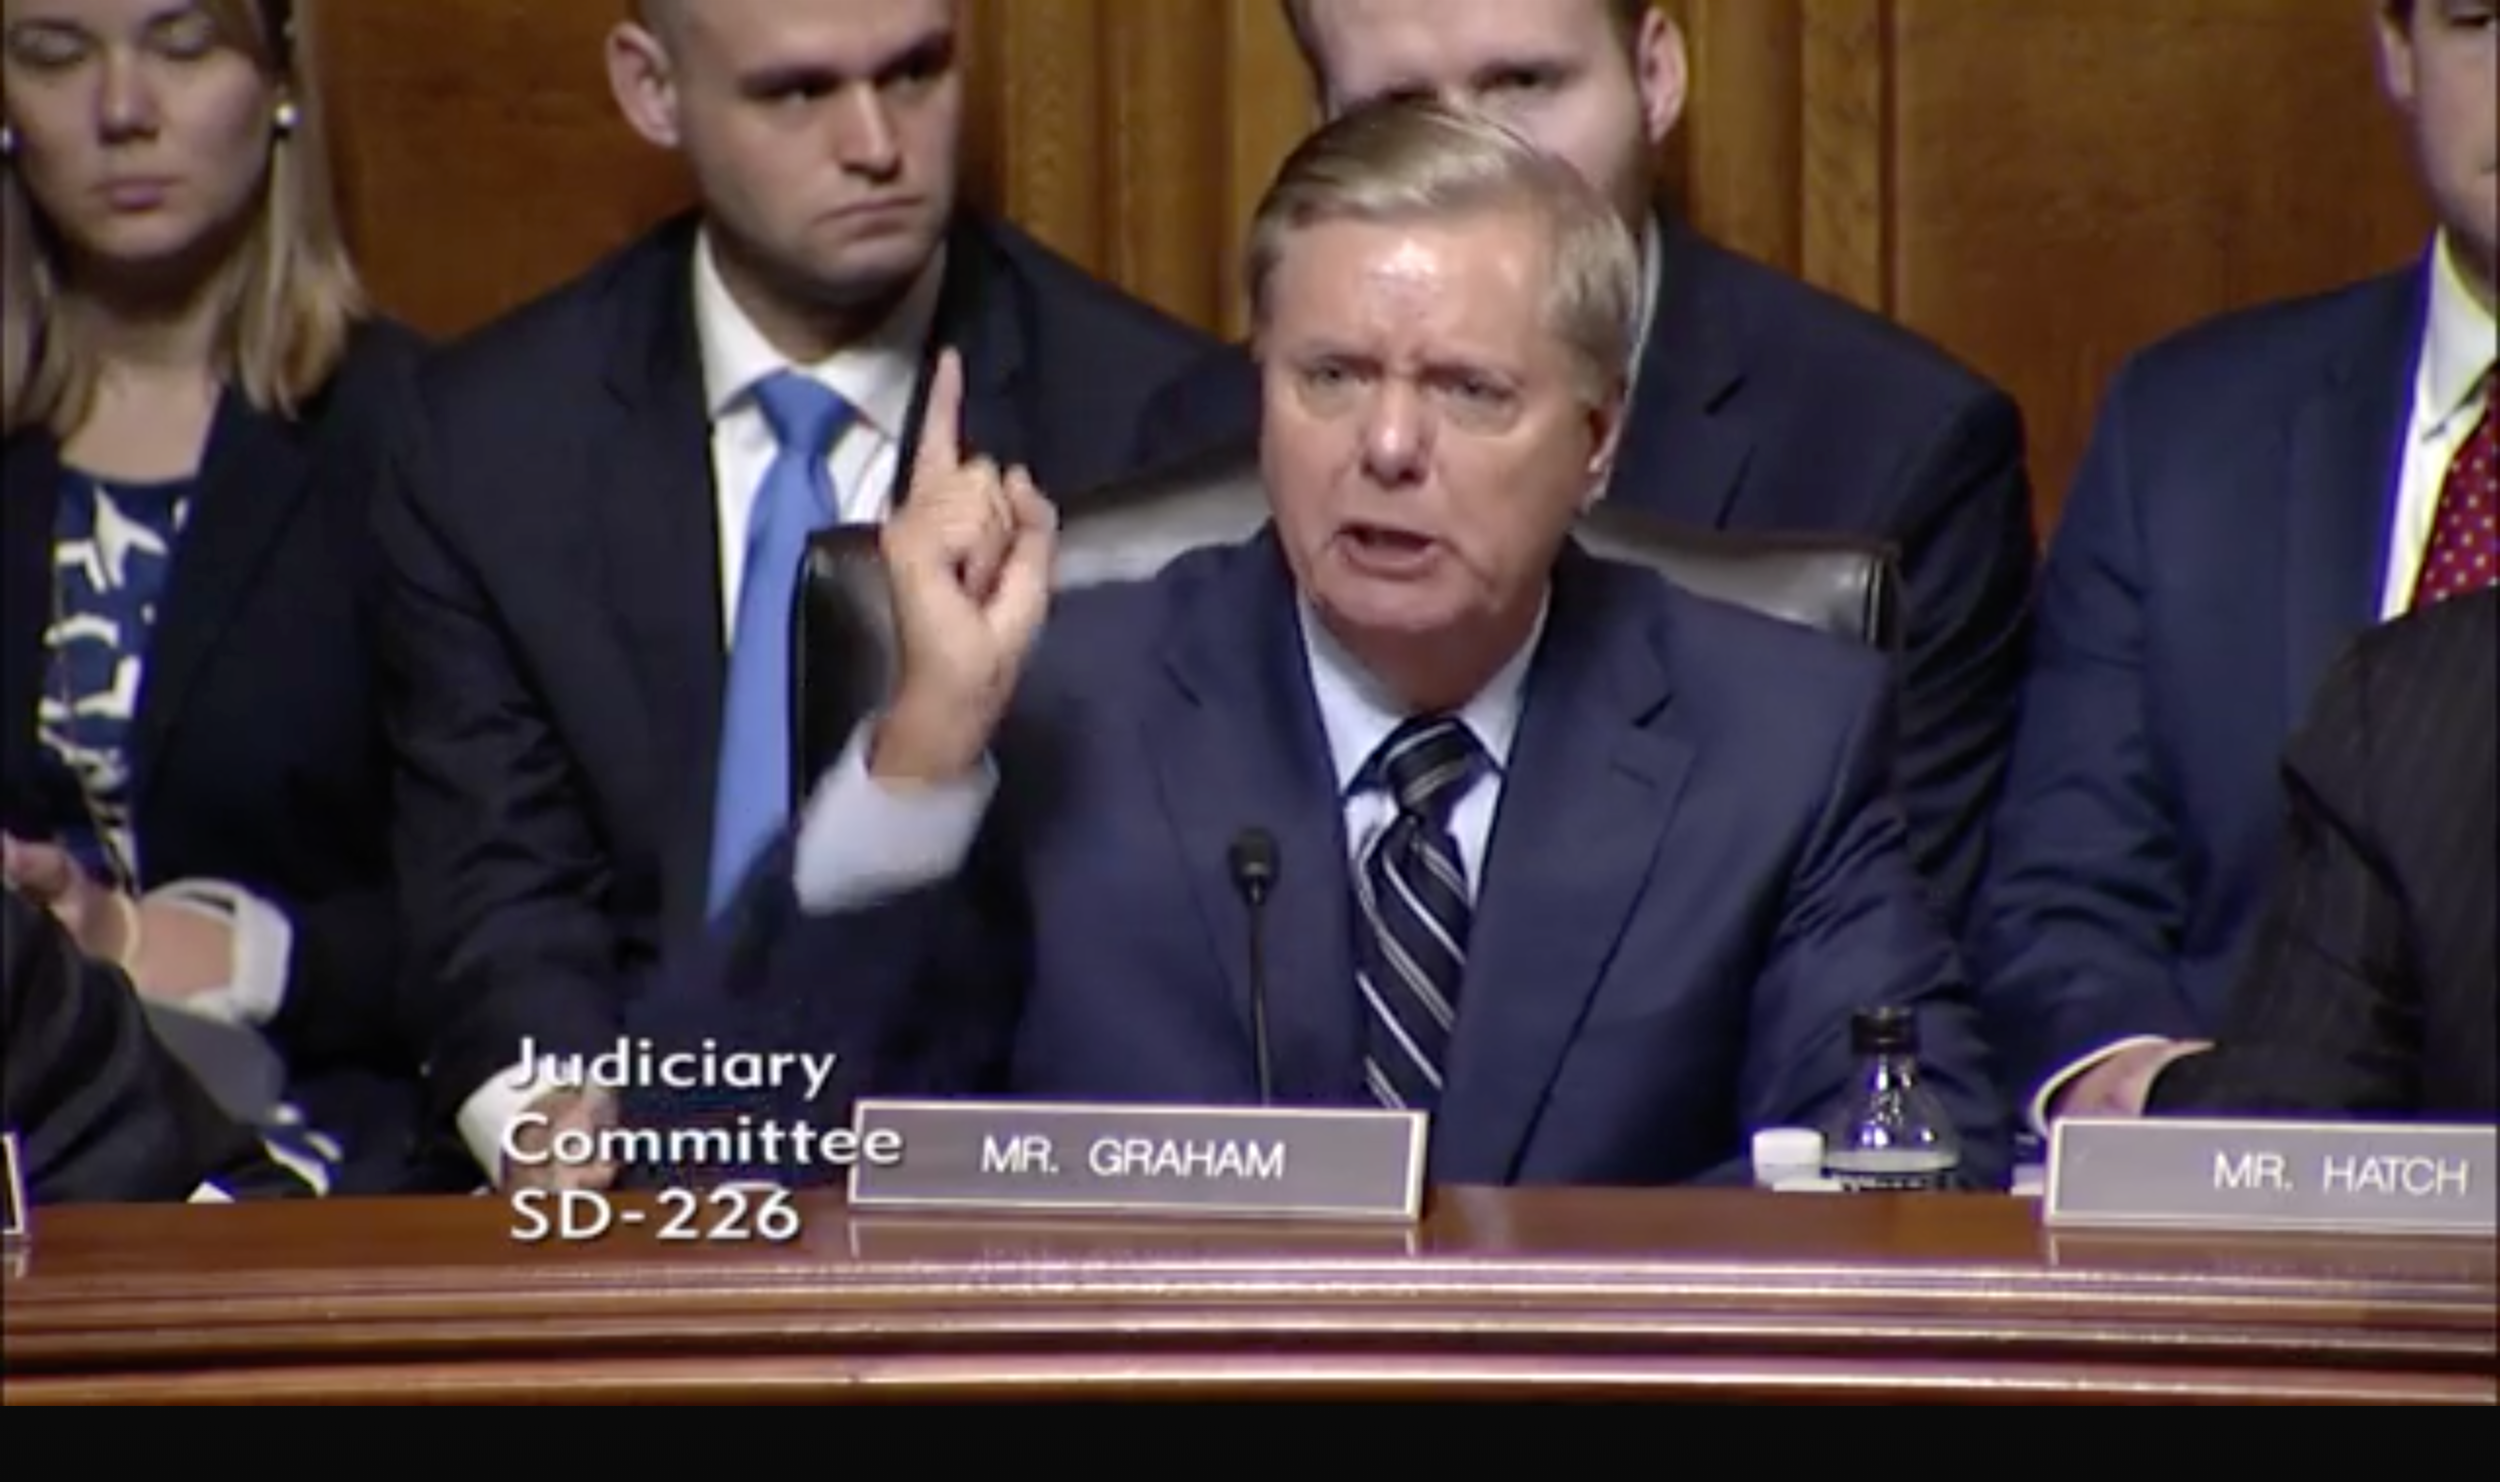 """Still frame capture from video of Senator Lindsey Graham (R-S.C.) during this week's Kavanaugh nomination hearing.  Source: """"Nomination of the Honorable Brett M. Kavanaugh to be an Associate Justice of the Supreme Court of the United States (Day 5),"""" September 27, 2018,    https://www.judiciary.senate.gov/meetings/nomination-of-the-honorable-brett-m-kavanaugh-to-be-an-associate-justice-of-the-supreme-court-of-the-united-states-day-5"""